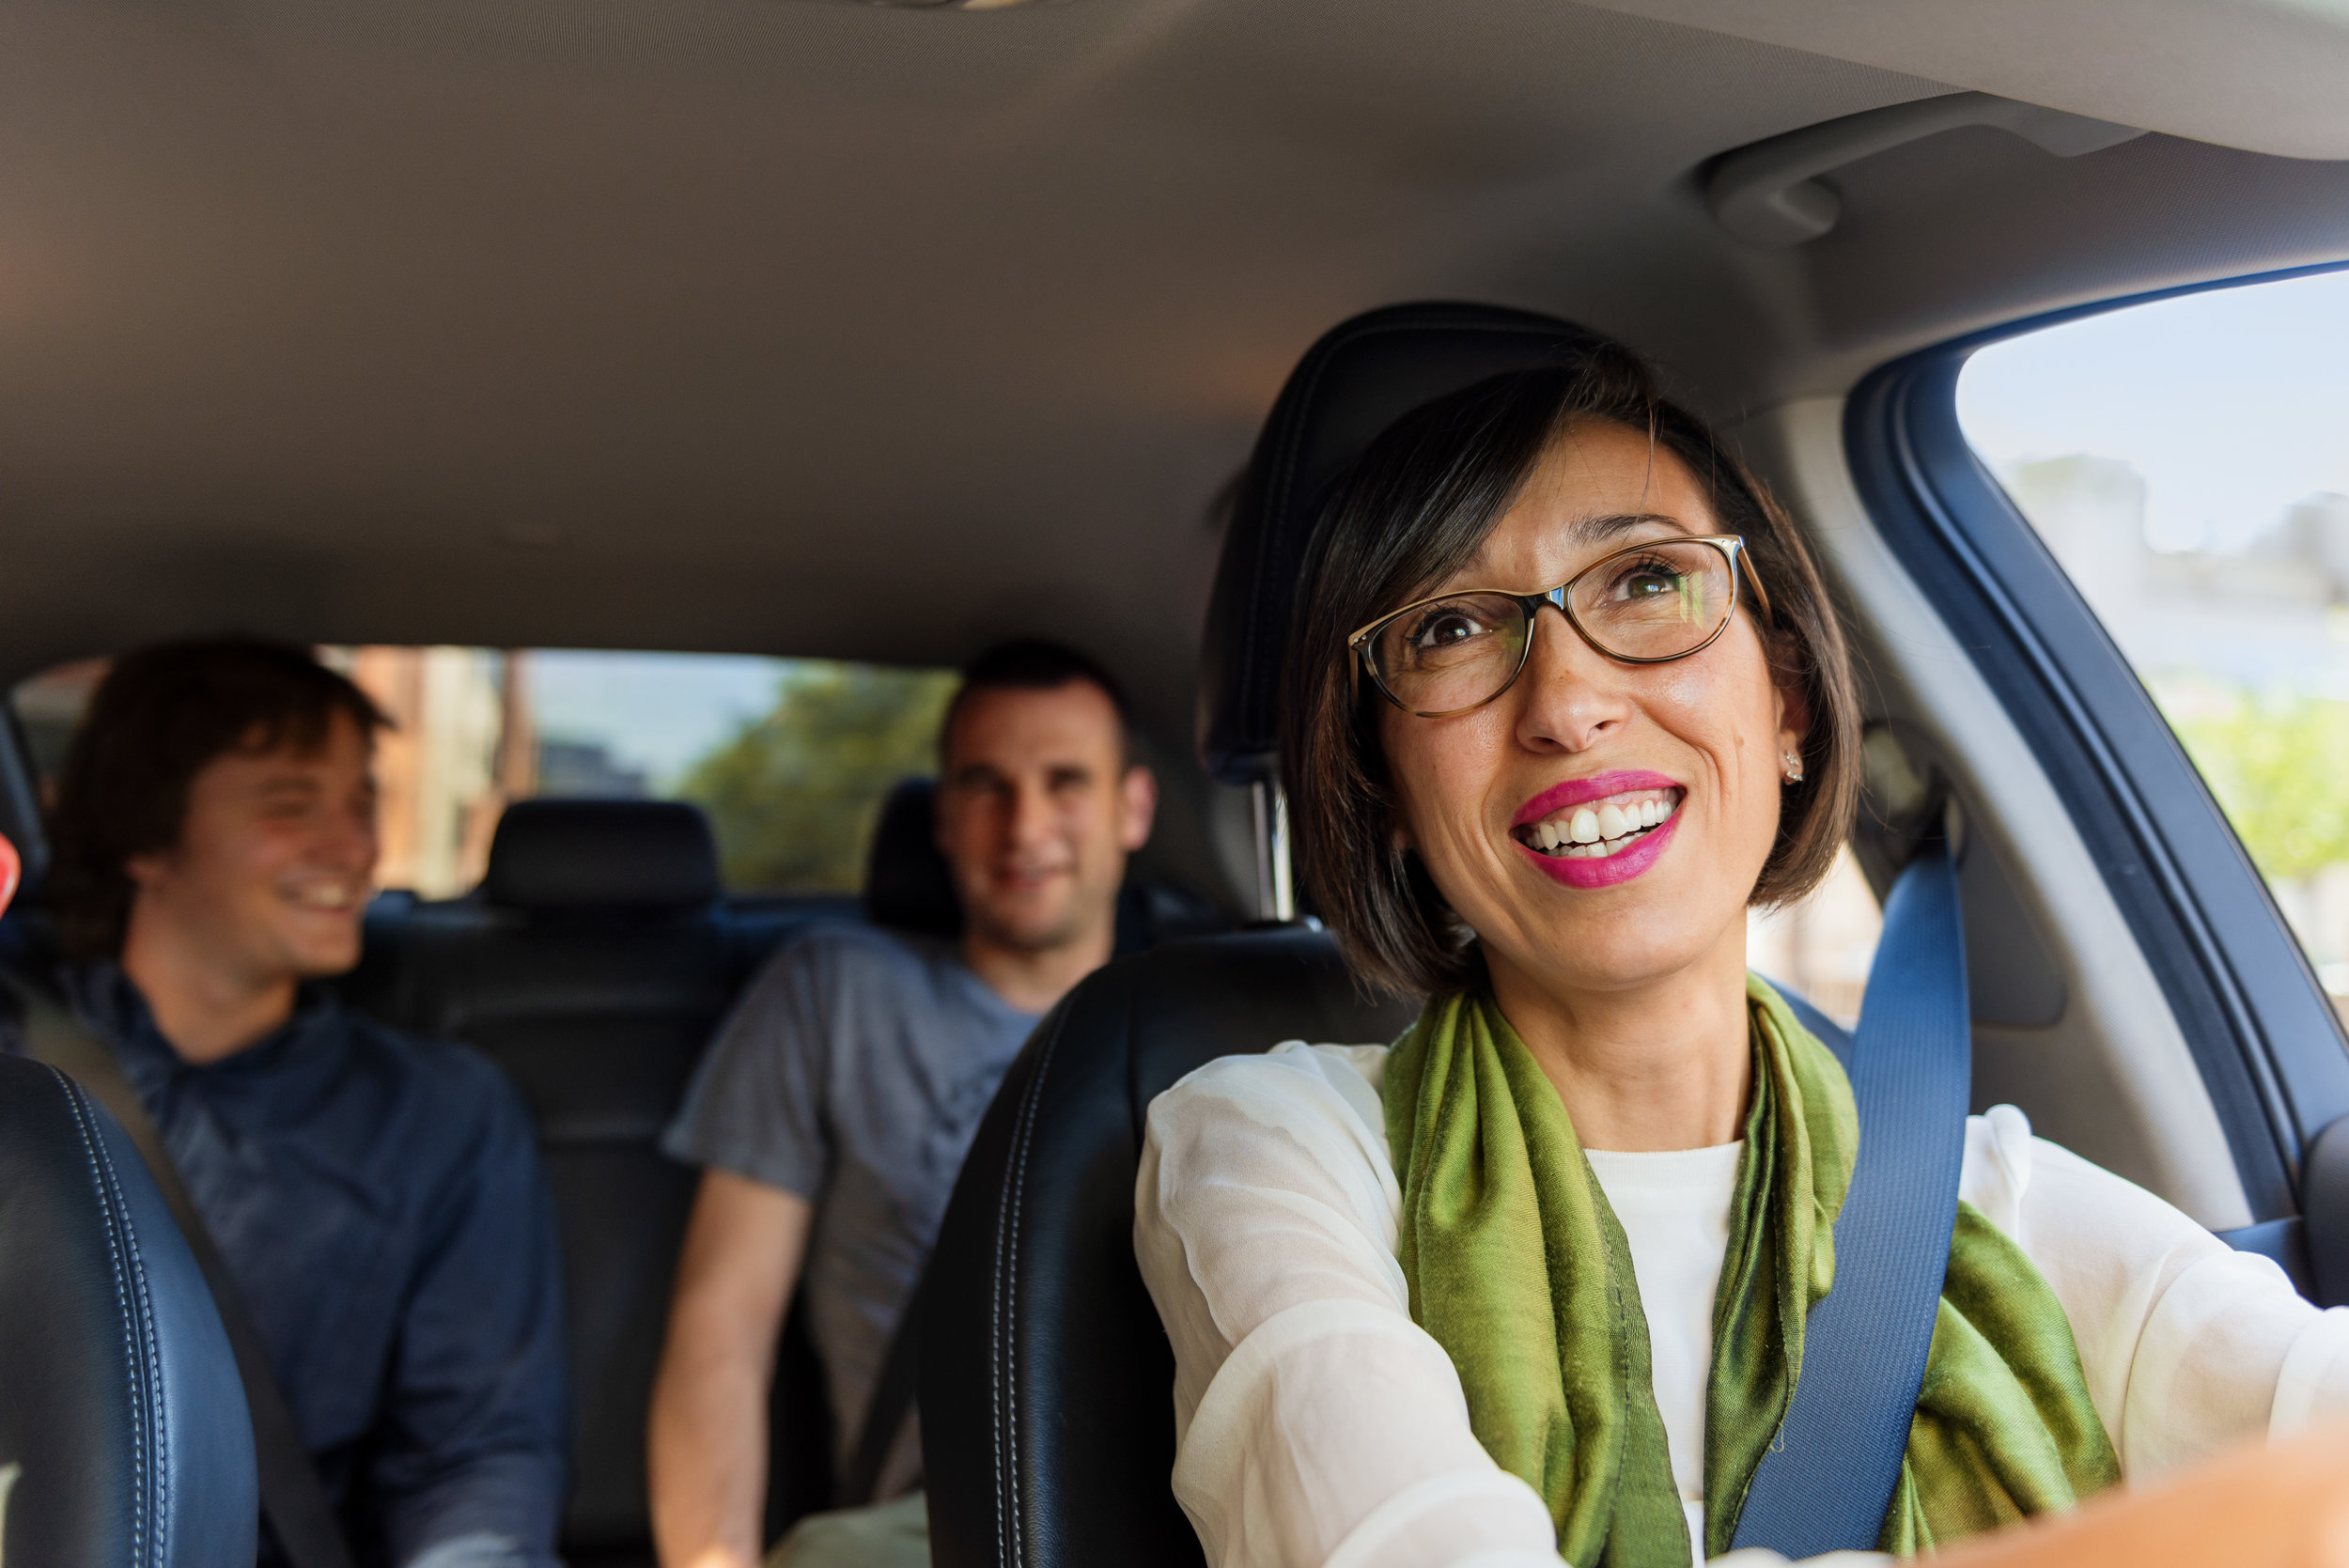 An Uber driver with passengers - Photo Compliments Uber Canada